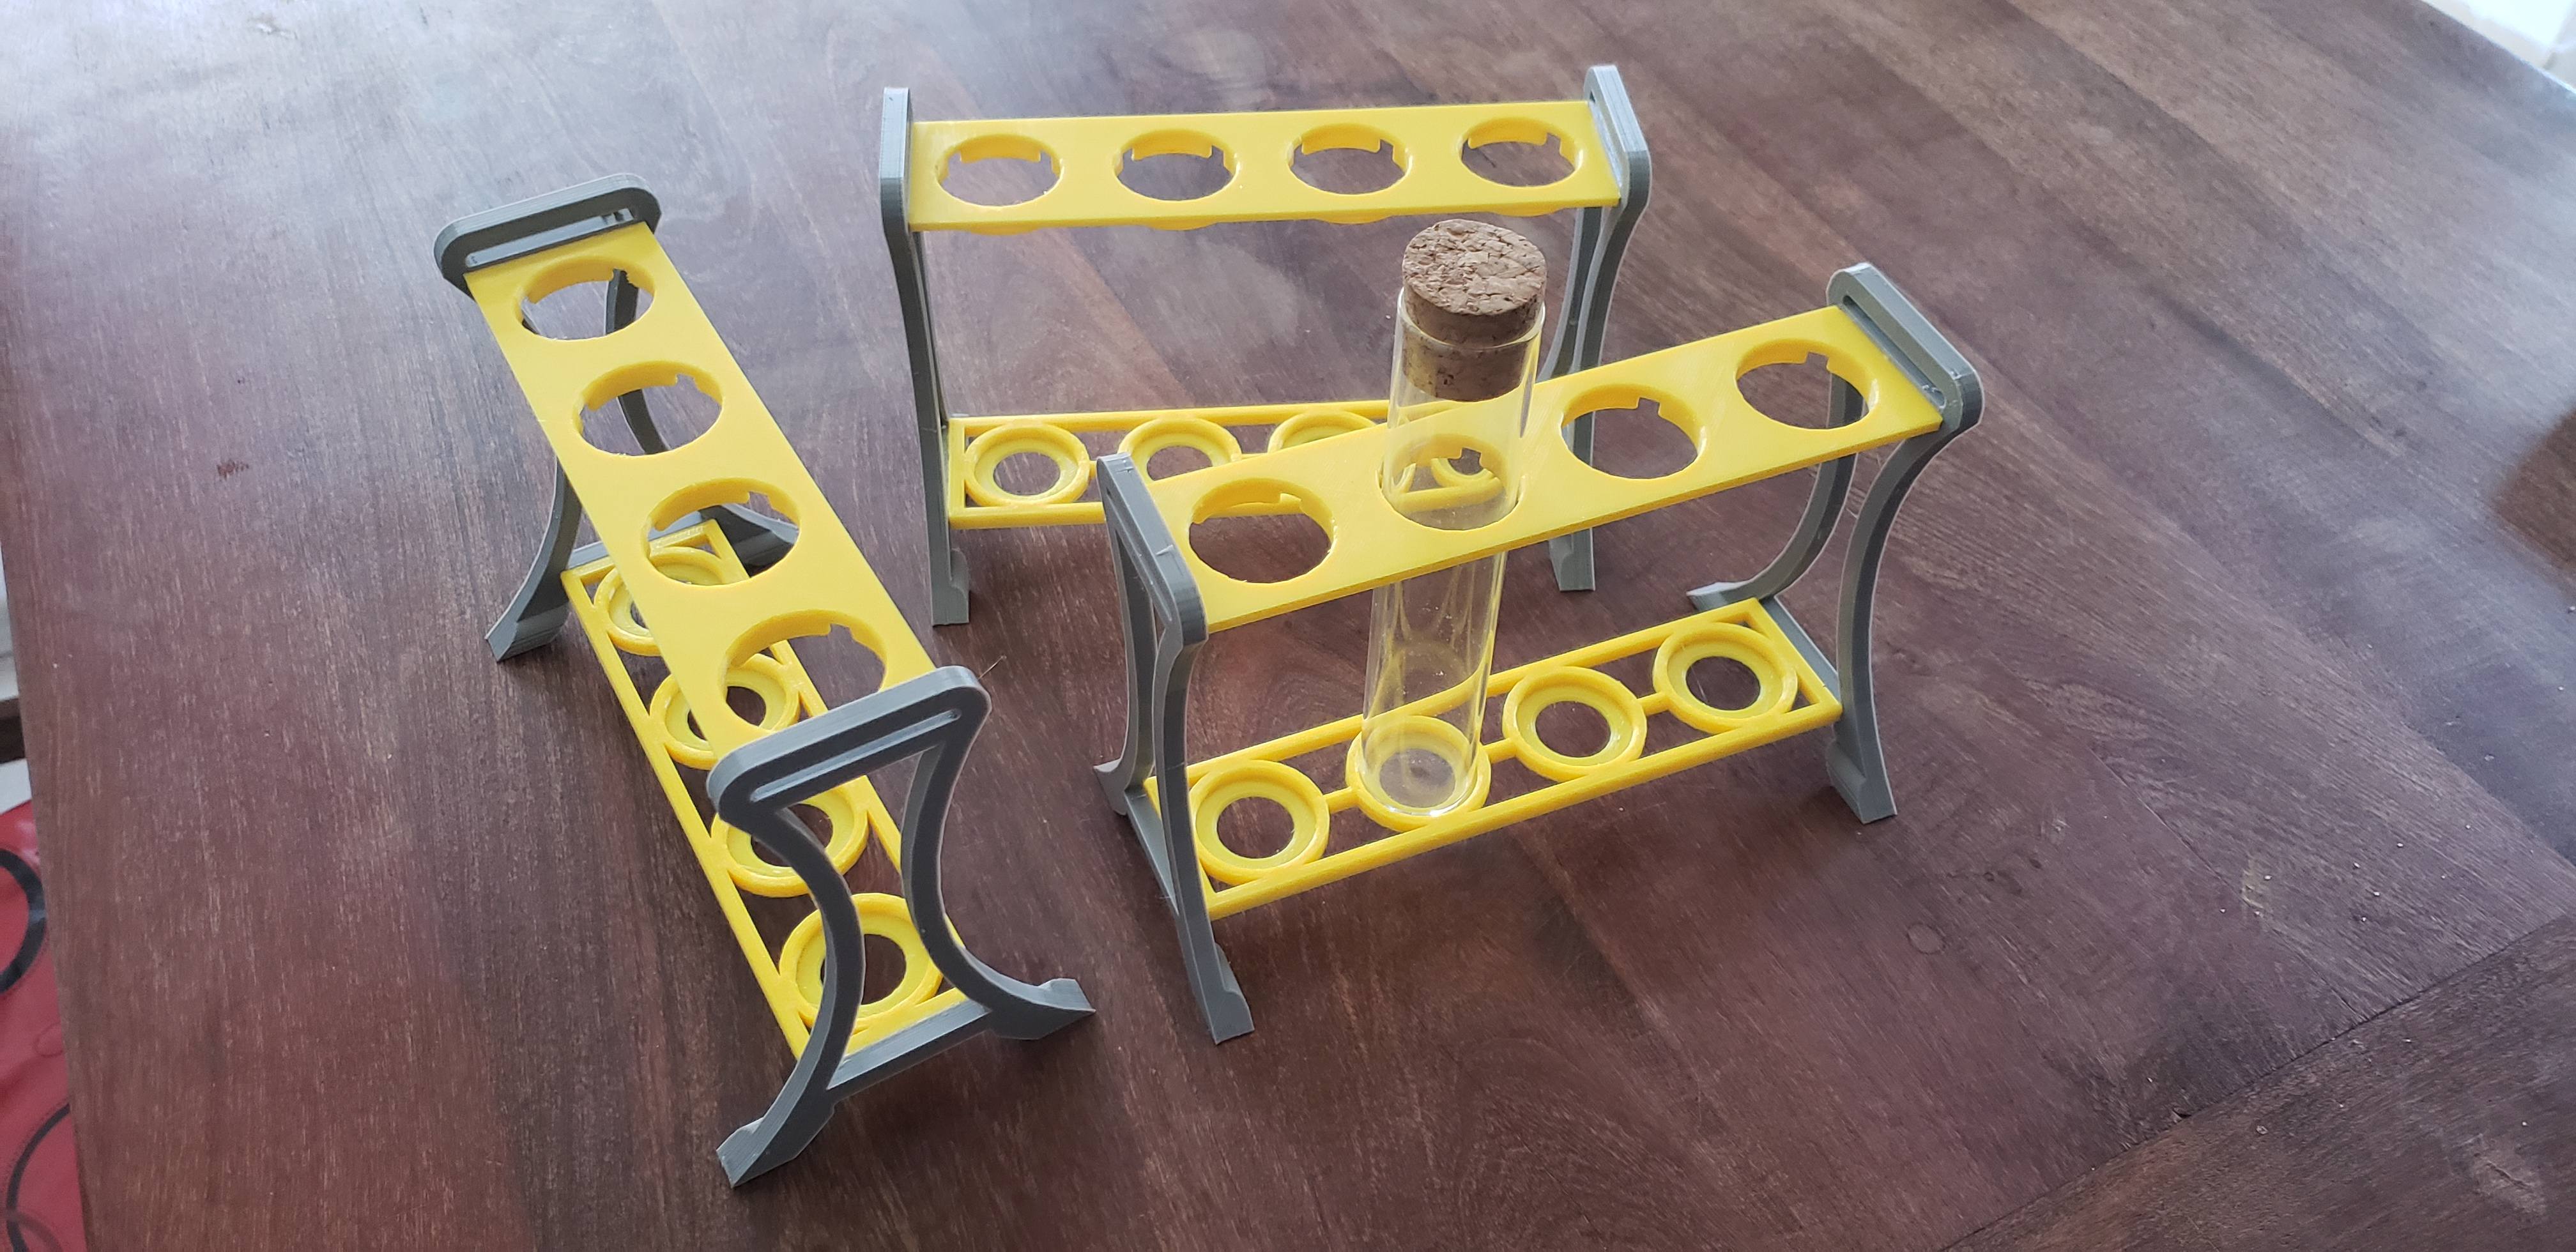 Test tube holder for 29mm diammeter tubes (Soporte tubos de ensayo)